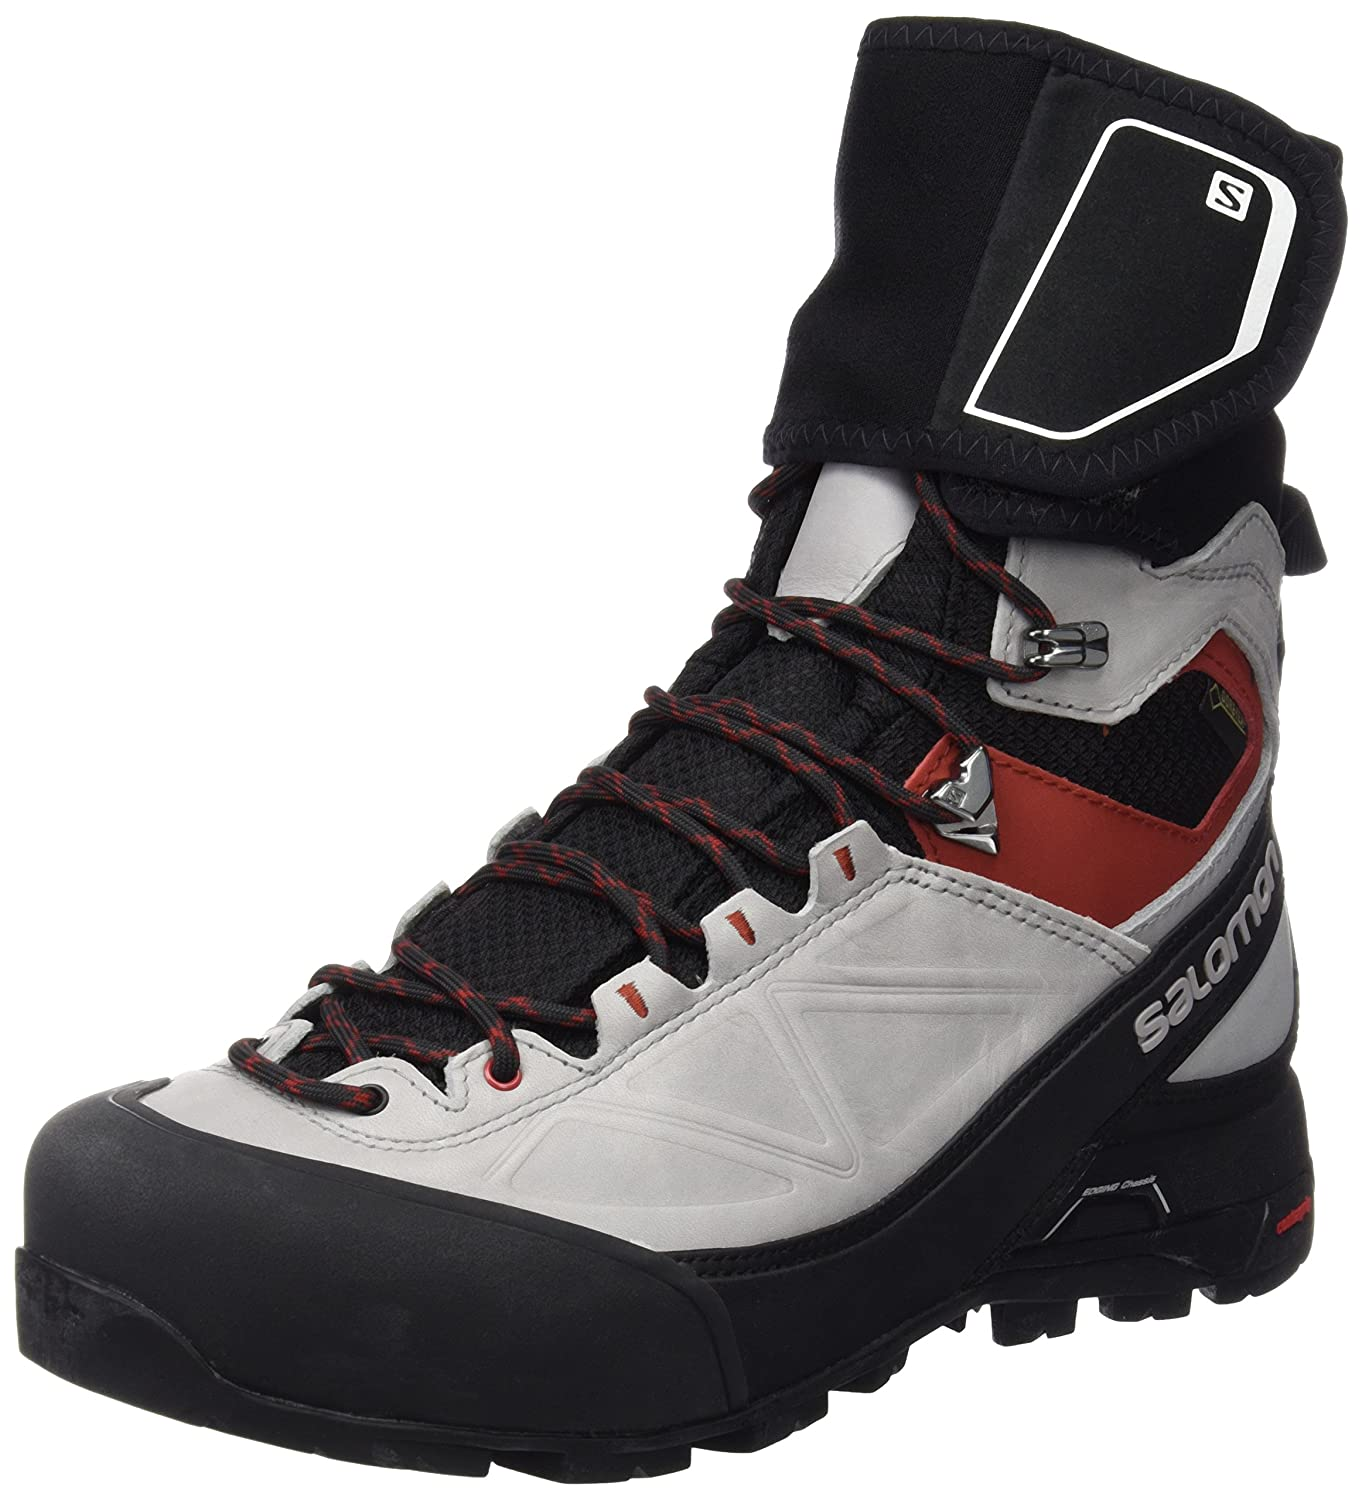 Salomon Men's X Alp Pro GTX Waterproof Hiking Boot B00KWKRD30 10.5 D(M) US|Black / Light Onix / Flea